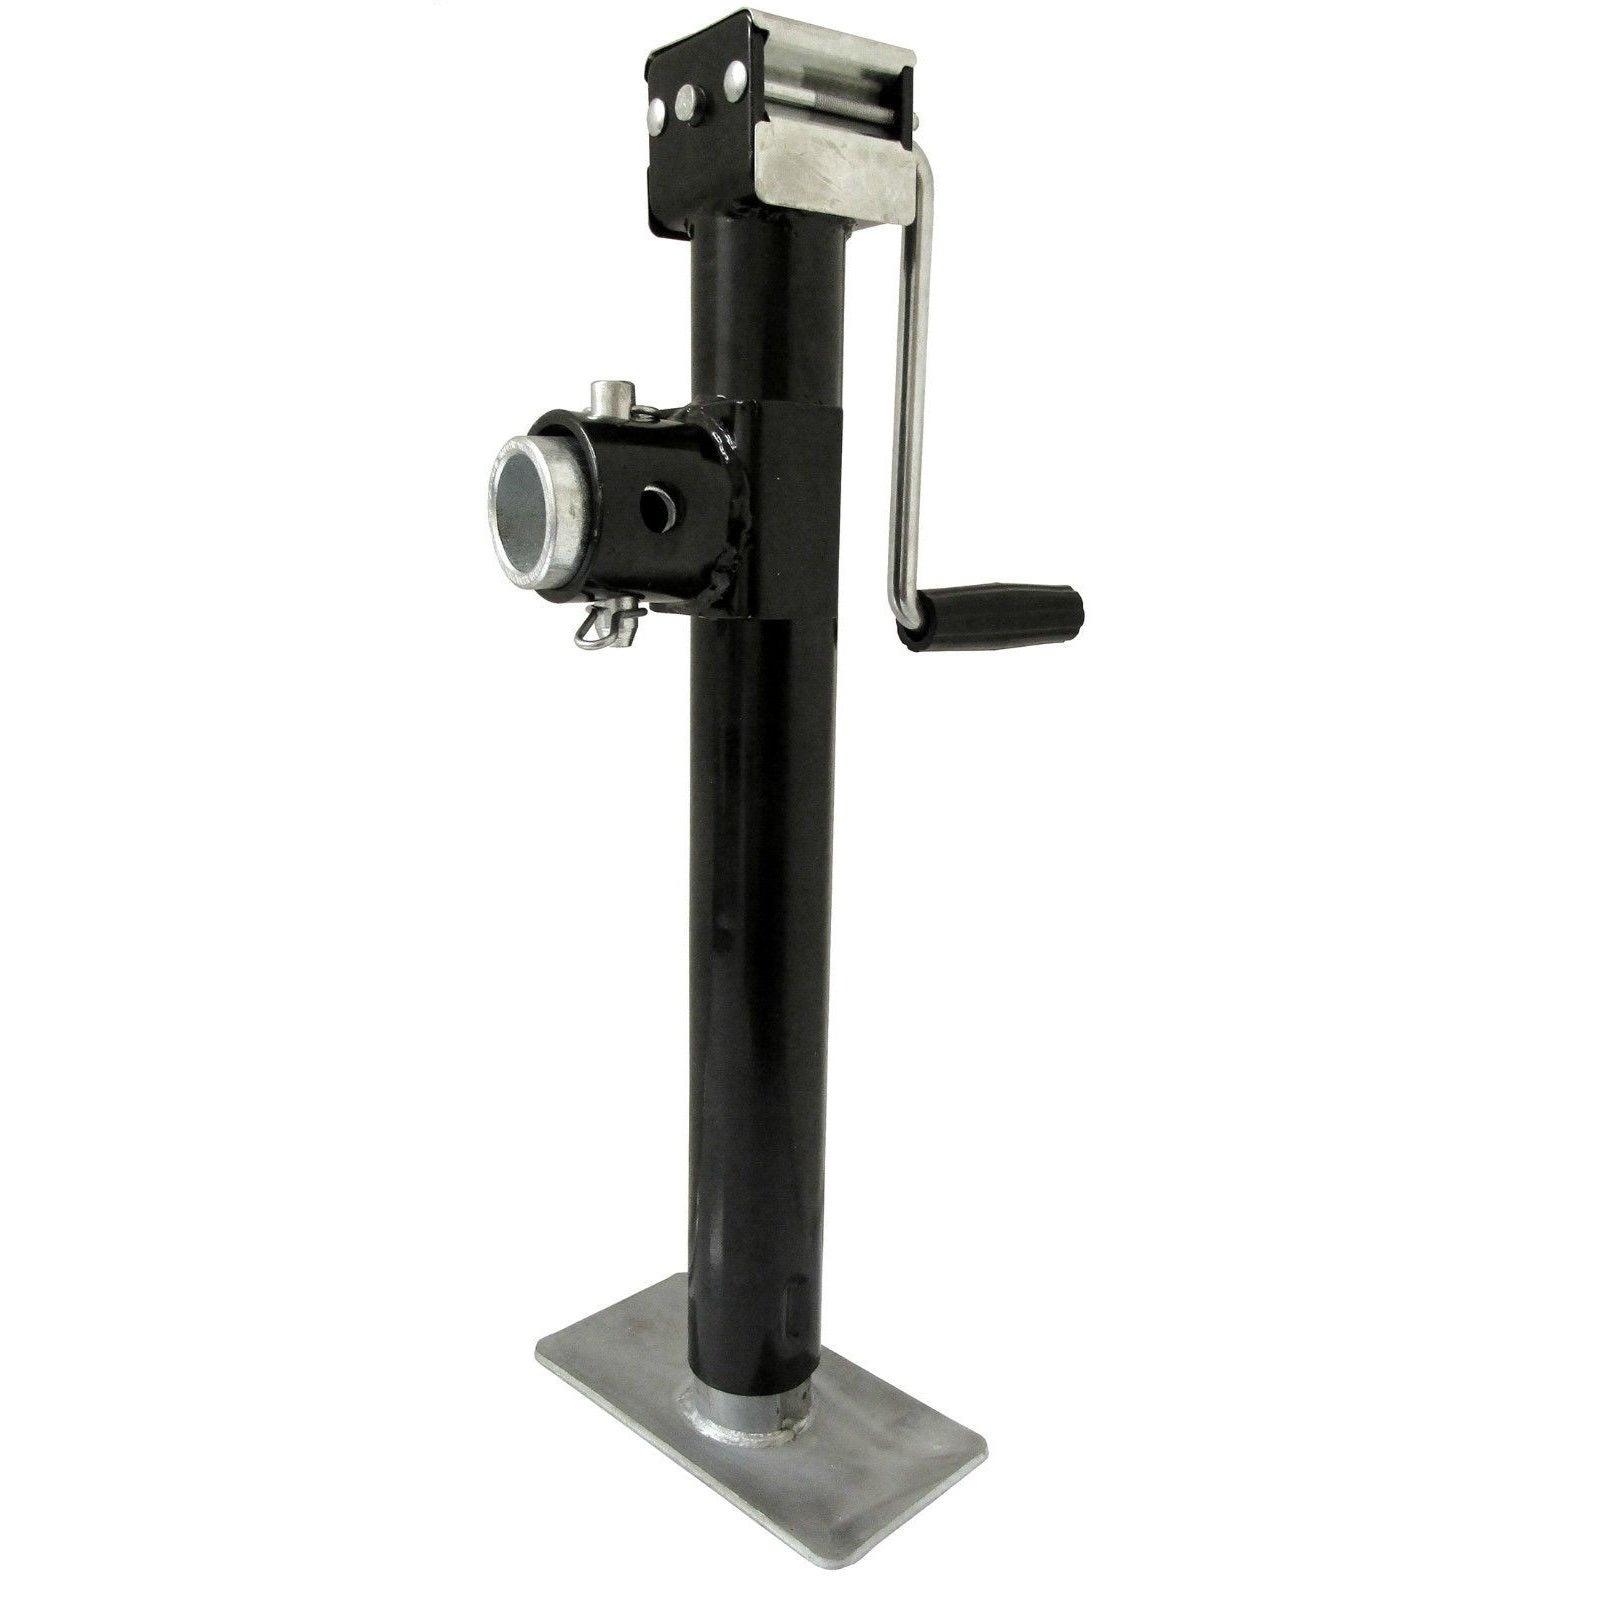 Trailer Jack Stand with a Flange 2000lbs Load 907kg - Extra Long Leg Buy